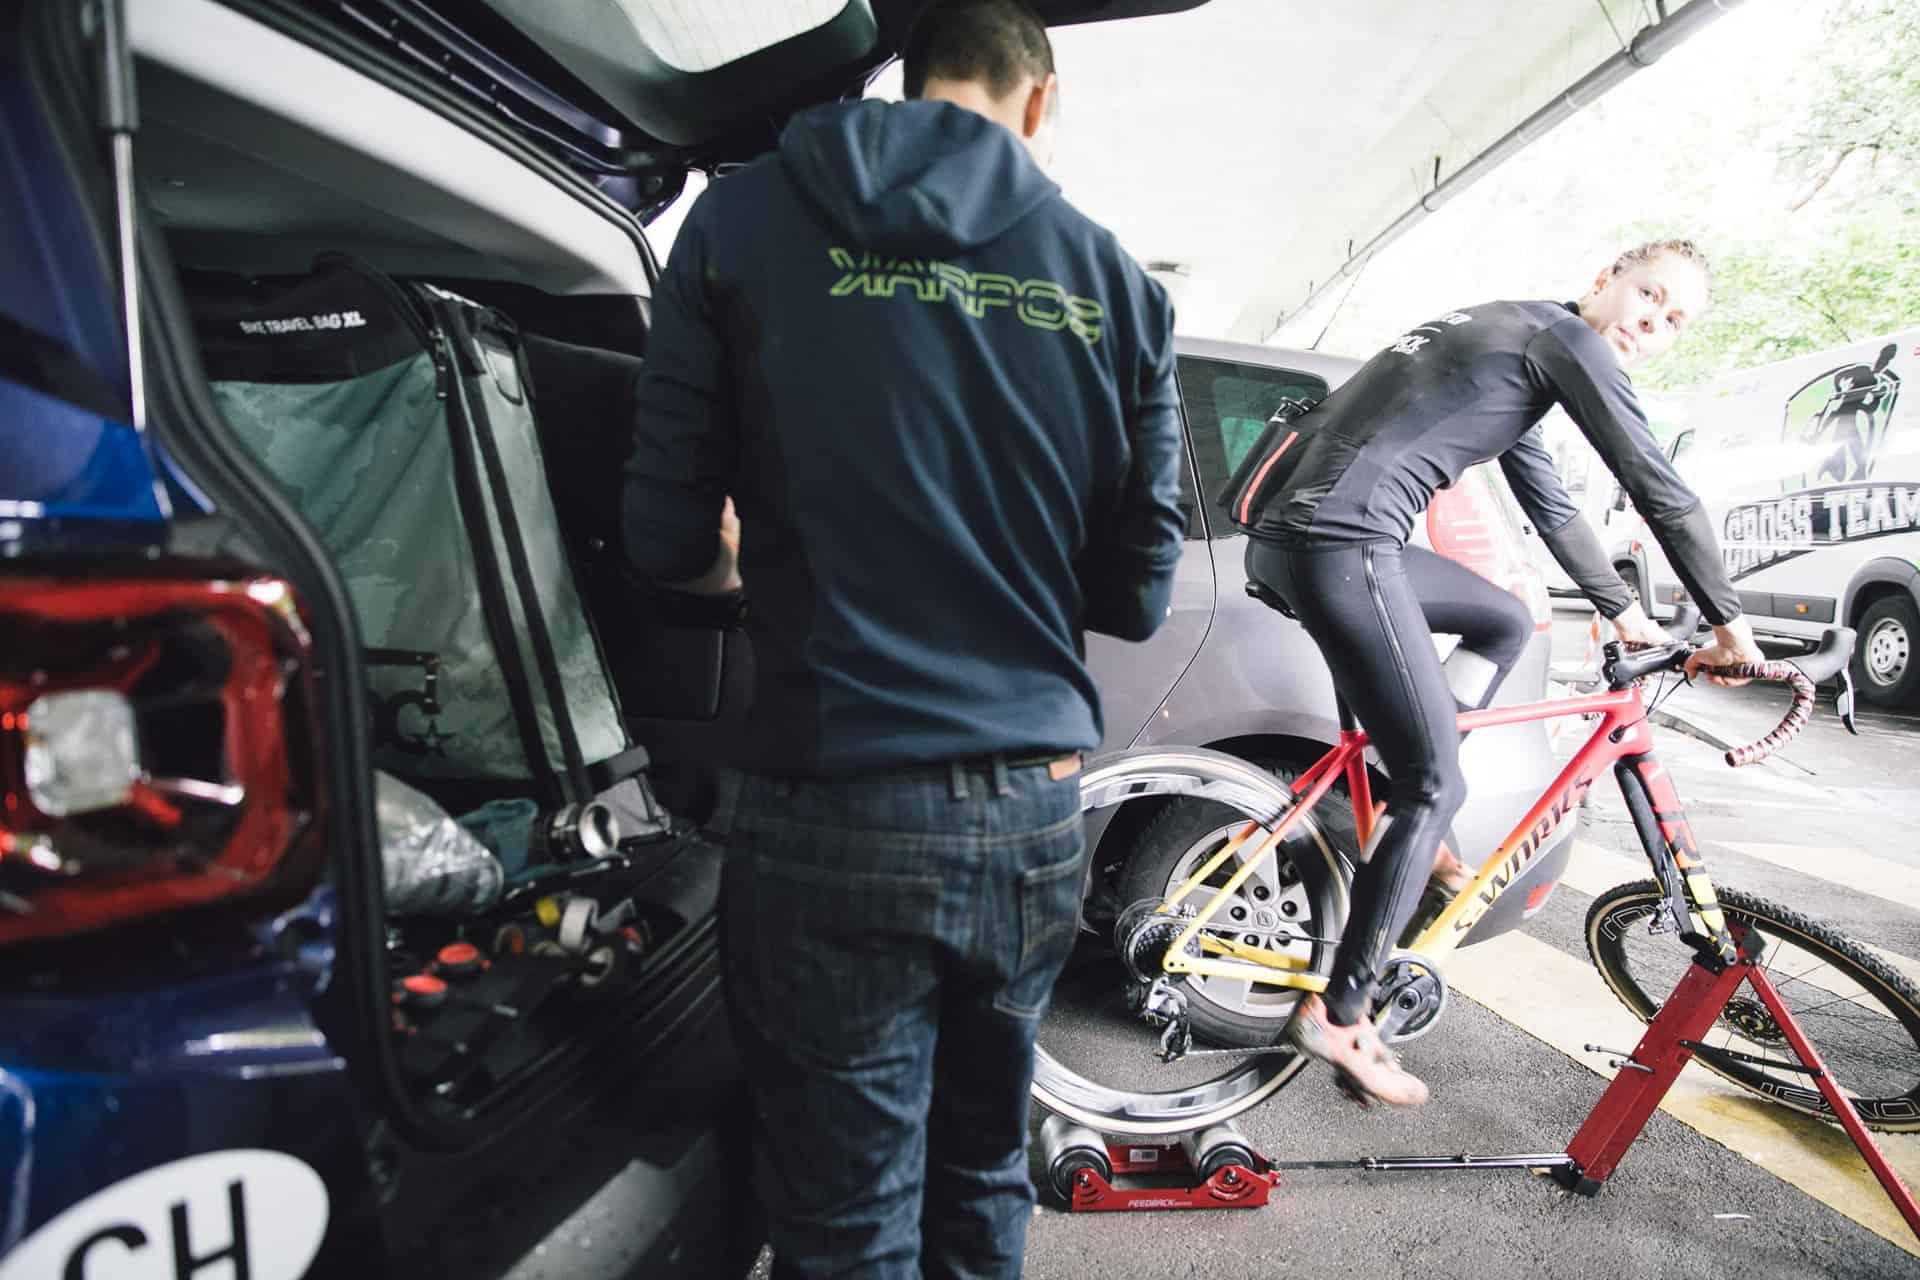 mechanic working on bike while cyclist rides